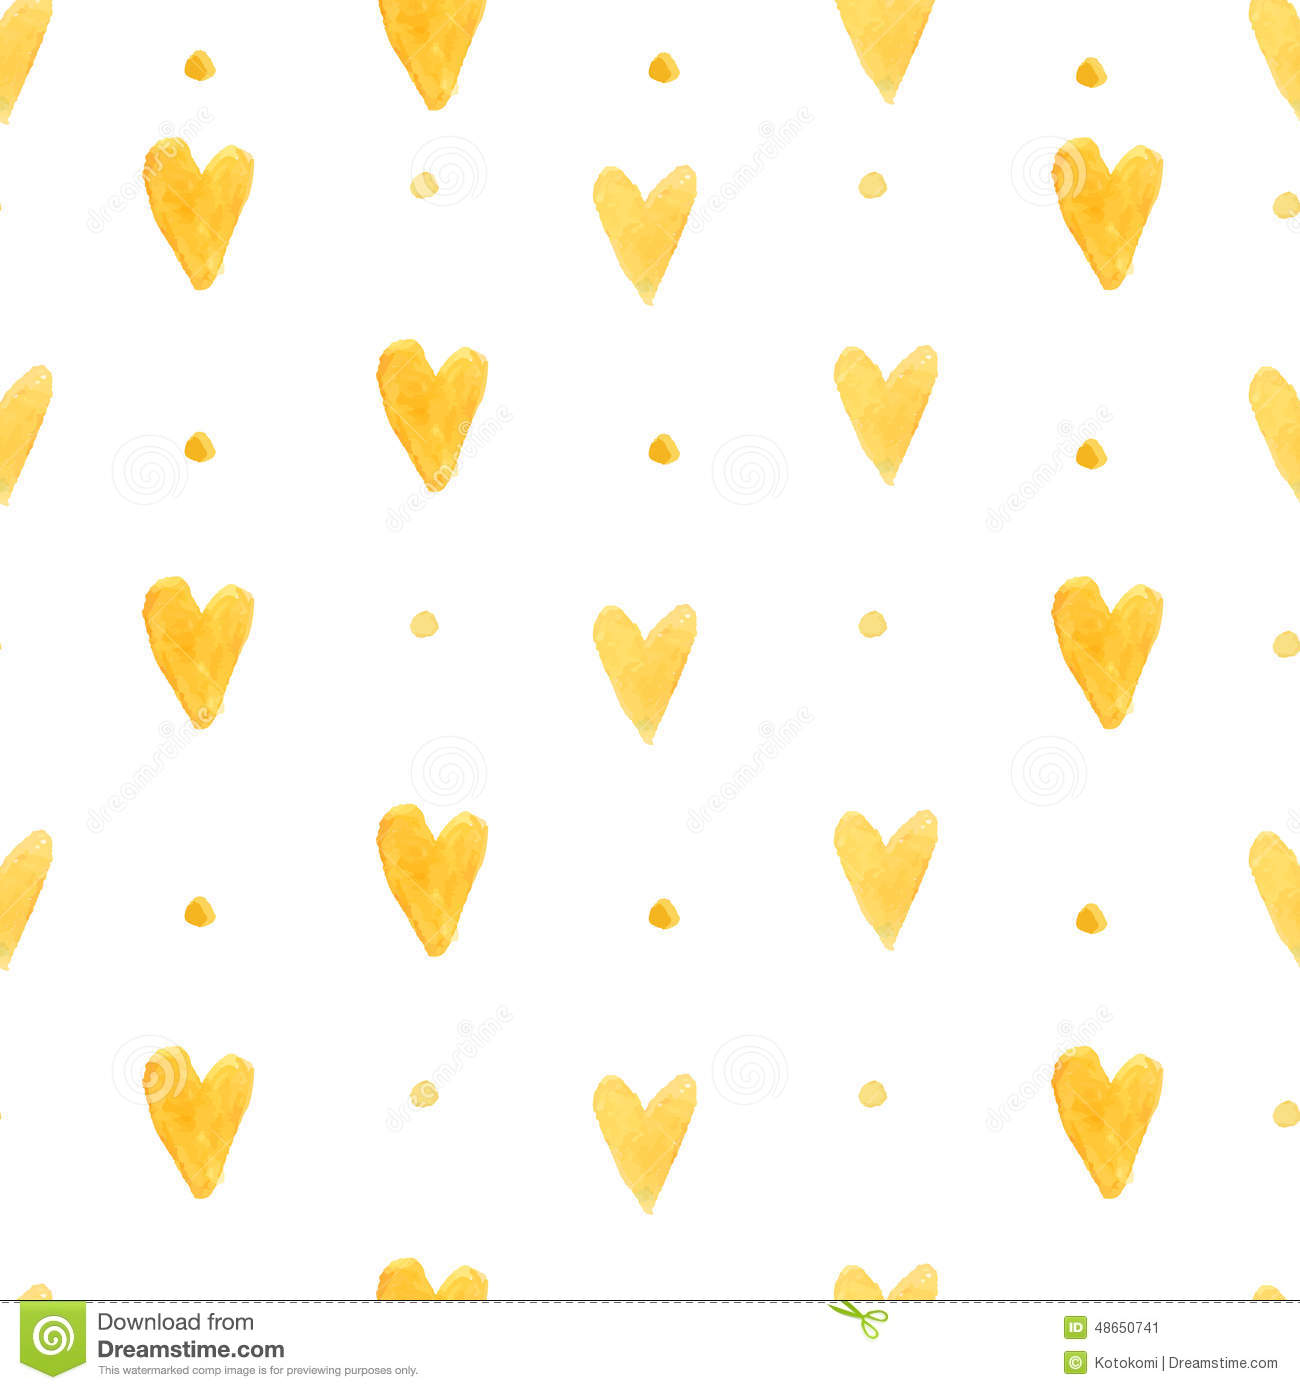 Watercolor Hearts Background Seamless Pattern With Hand